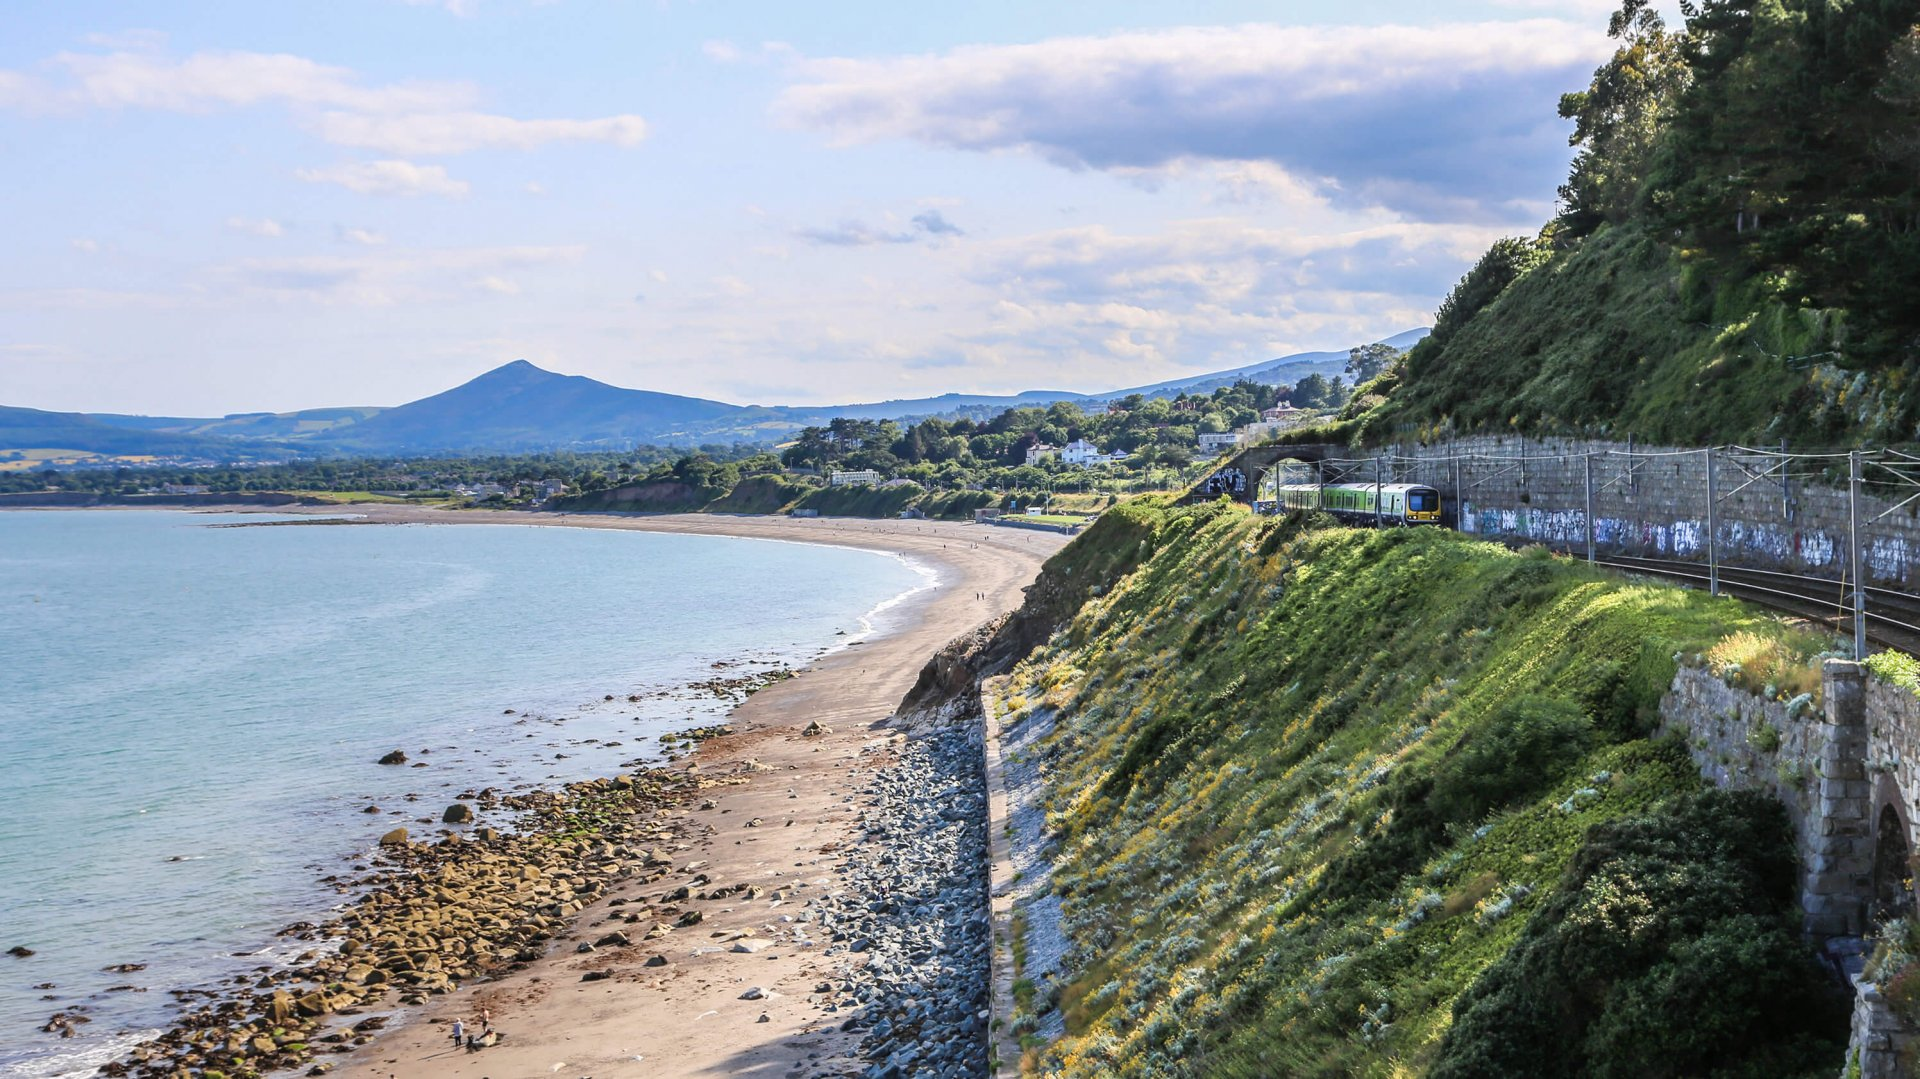 A DART train makes its way along Killiney Bay with the Sugarloaf mountain in the background